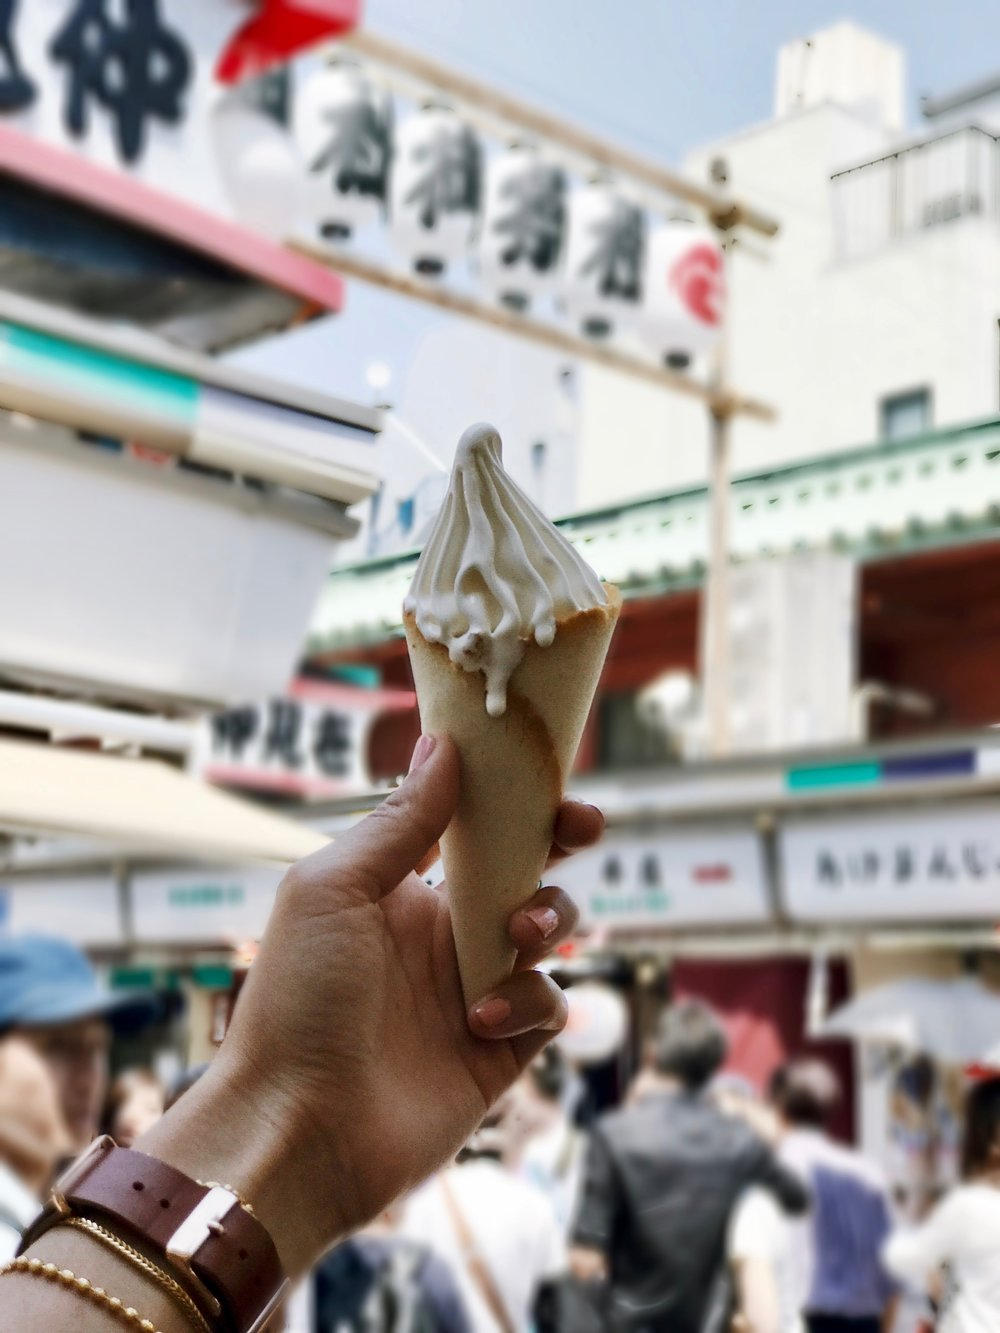 Only the best ice cream ever. Milky, soft served, inside a buttery cone.